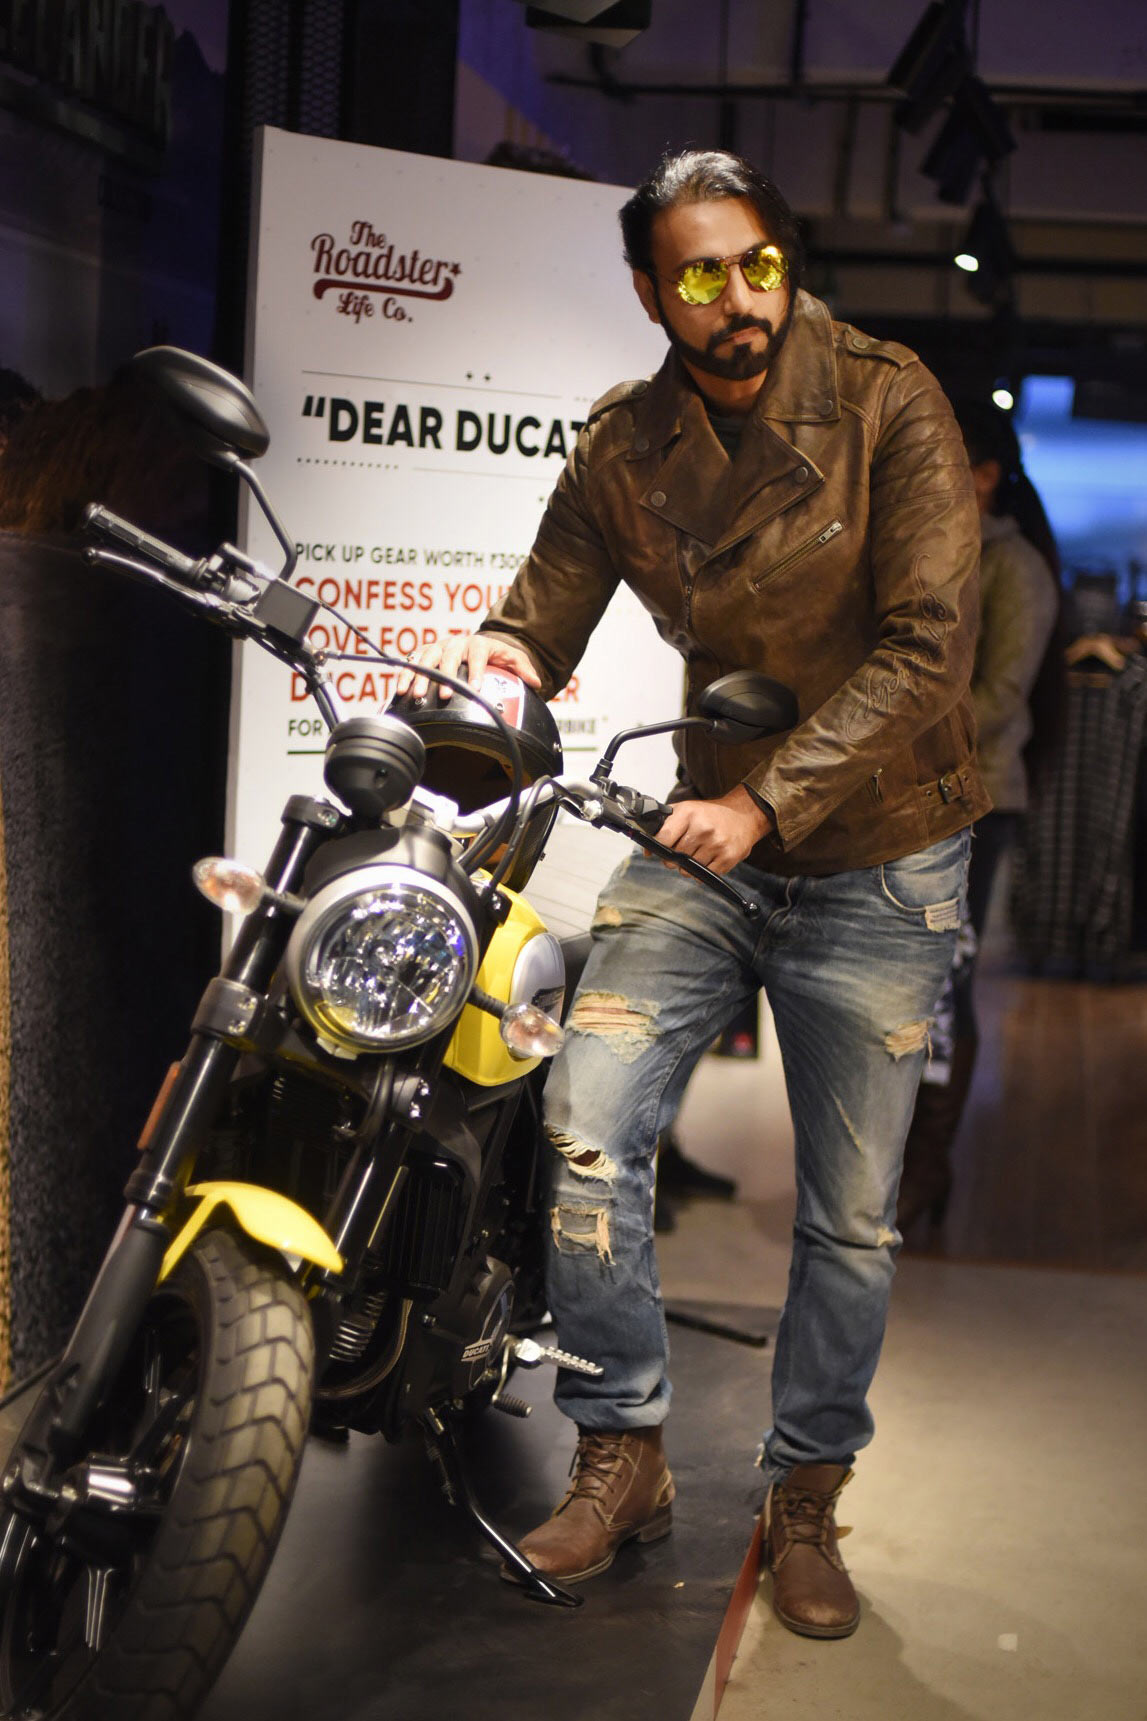 Ducati-and-Roadster-(3)